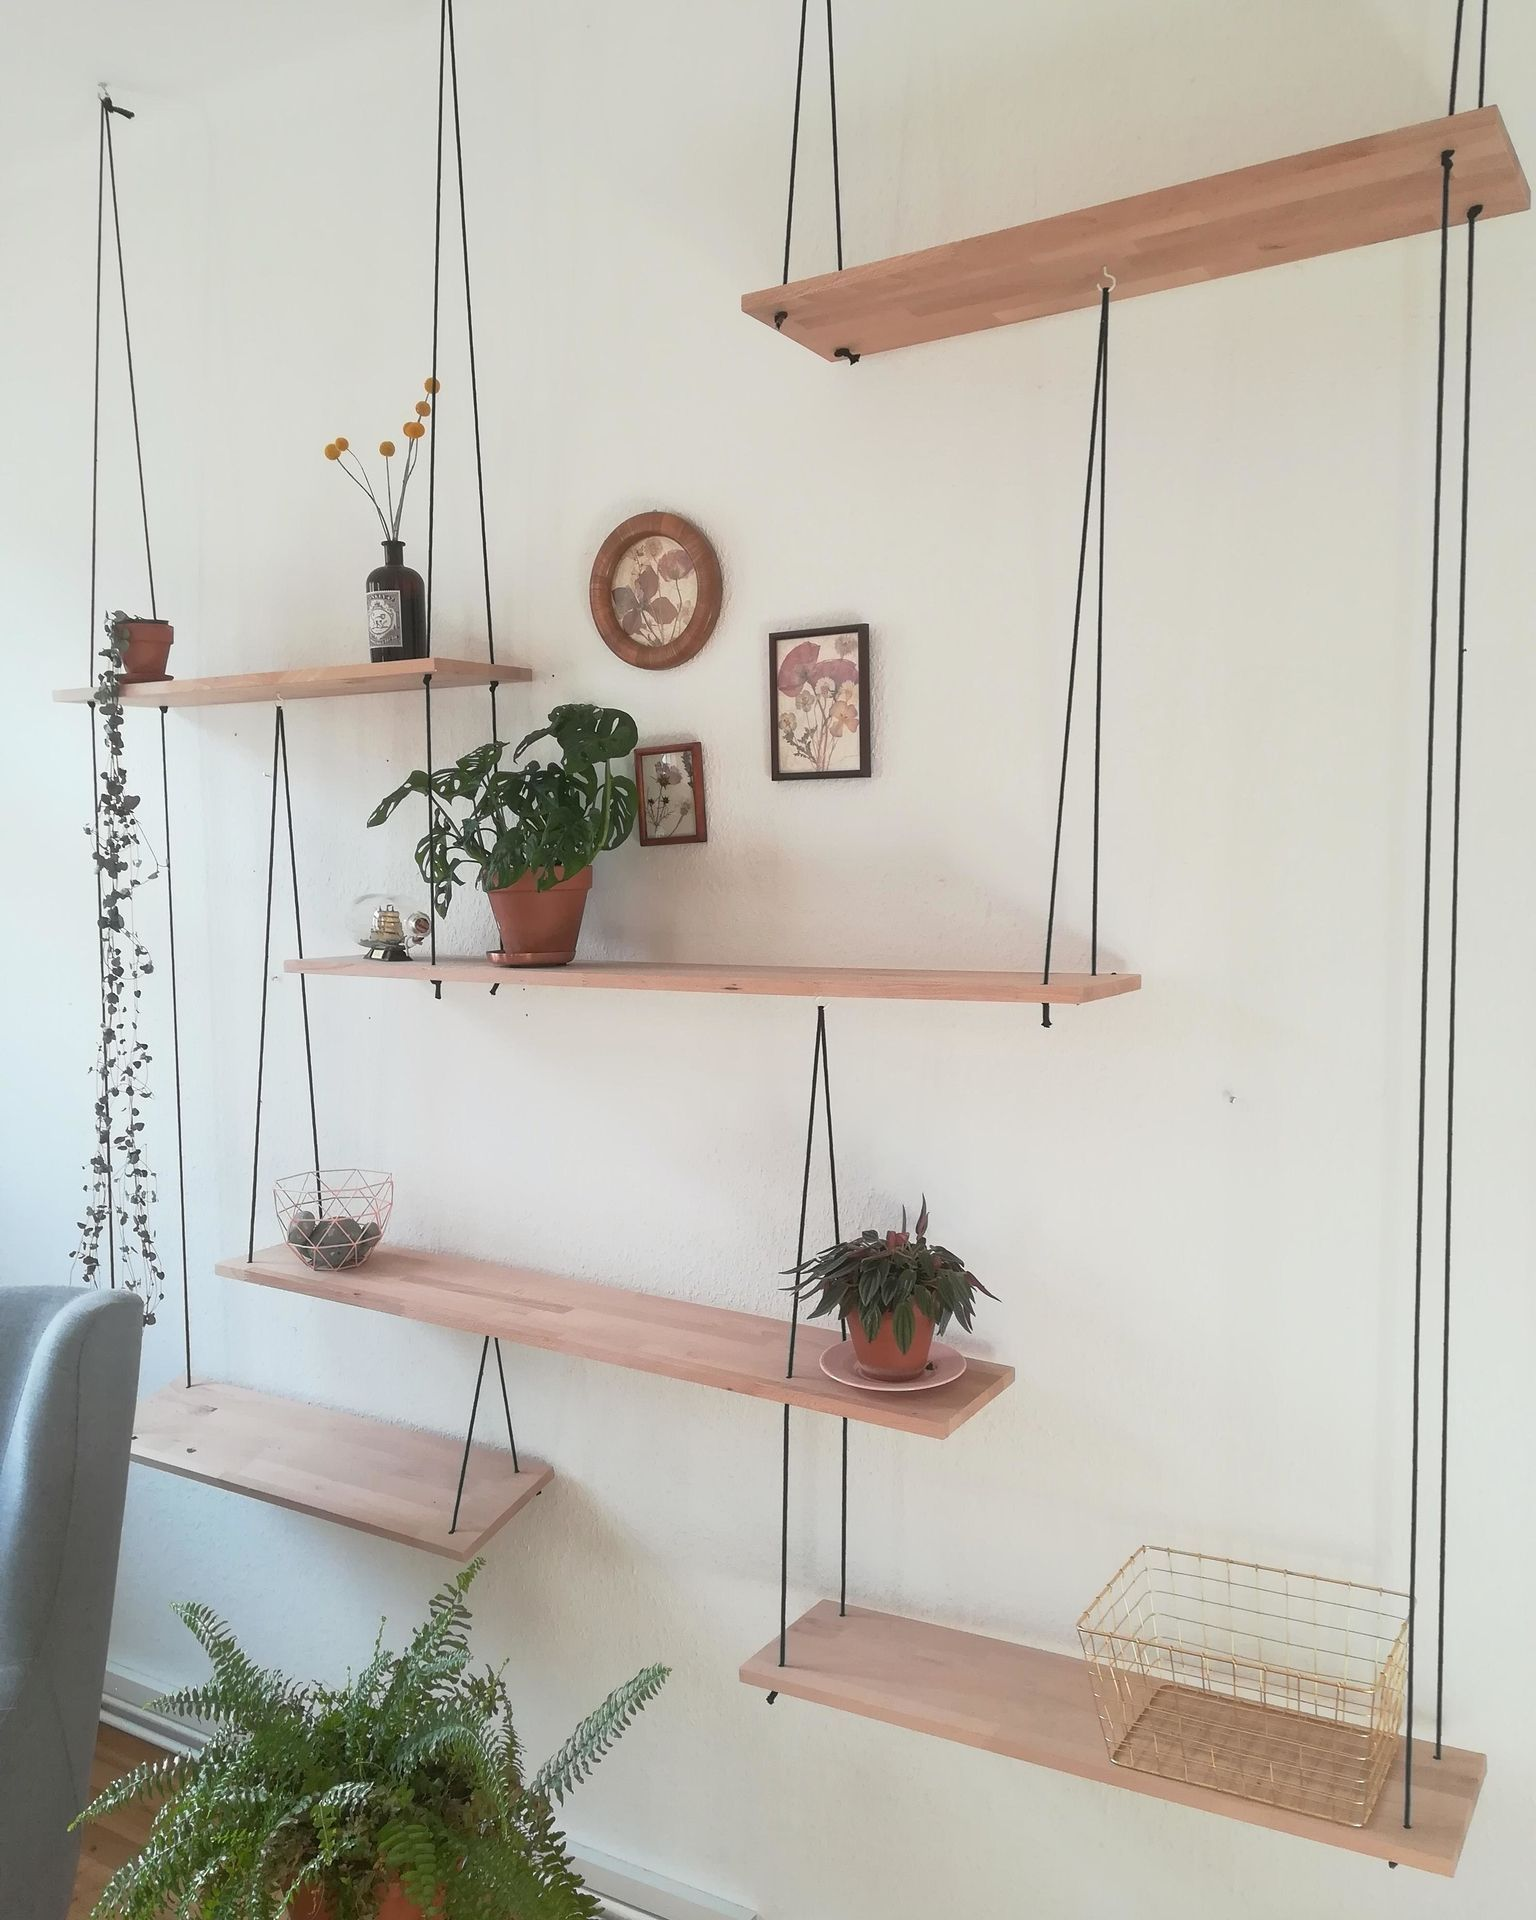 Regale Selber Bauen Diy Regal: Individuelle Regale Selber Bauen, So Geht's! - #bauen #diy #gehts #individuelle #regal #regale #selber #s… | Diy Shelves, Build Your Own Shelves, Shelves